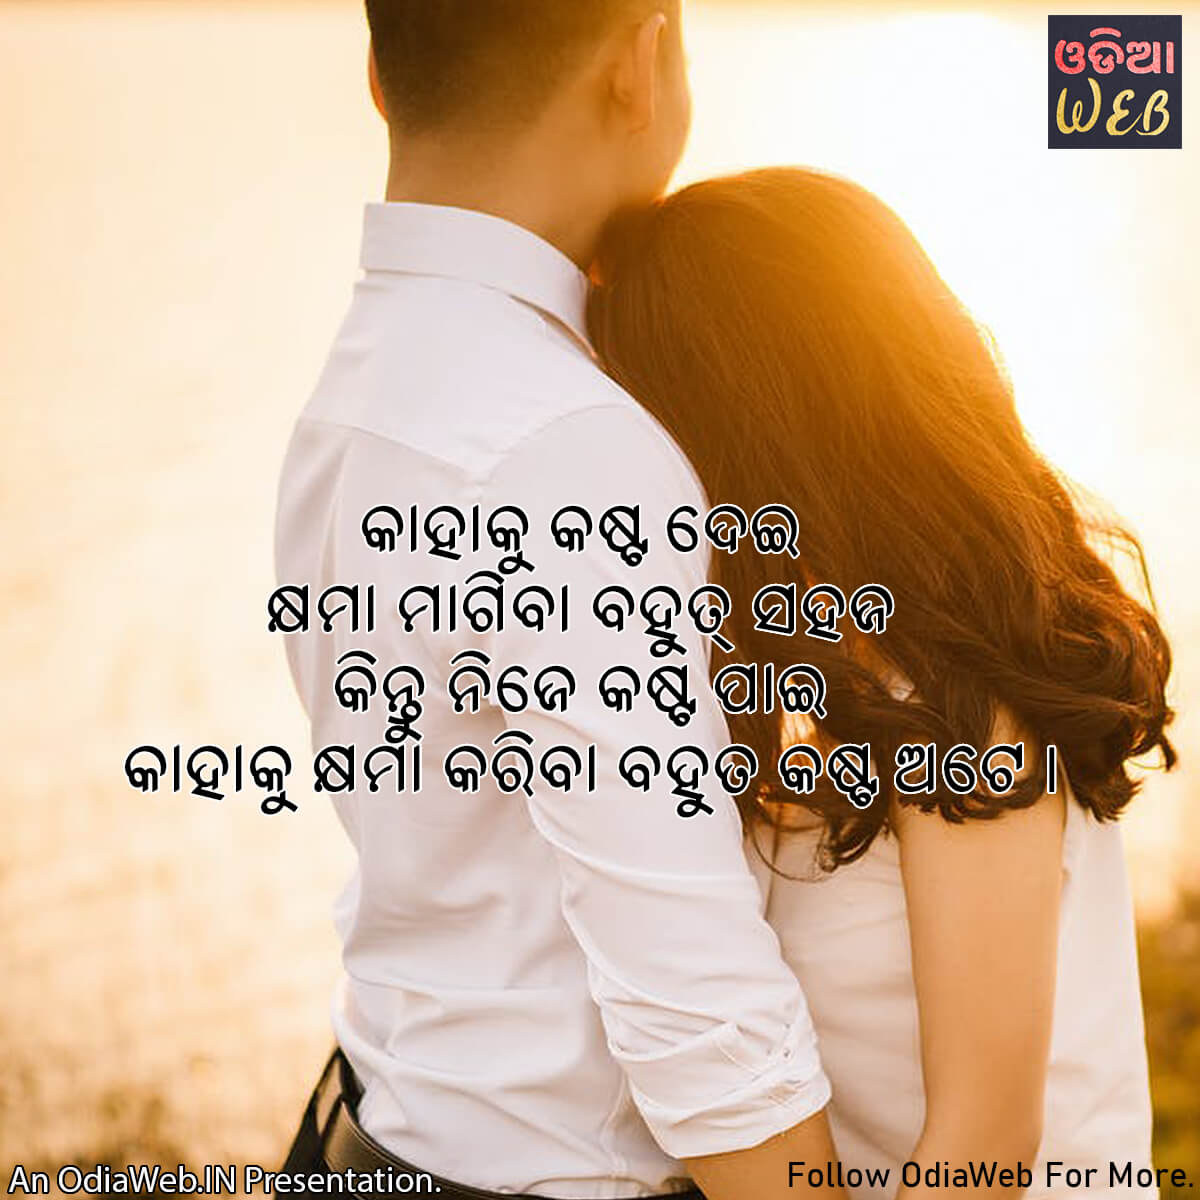 Odia Foregiveness Quotes4